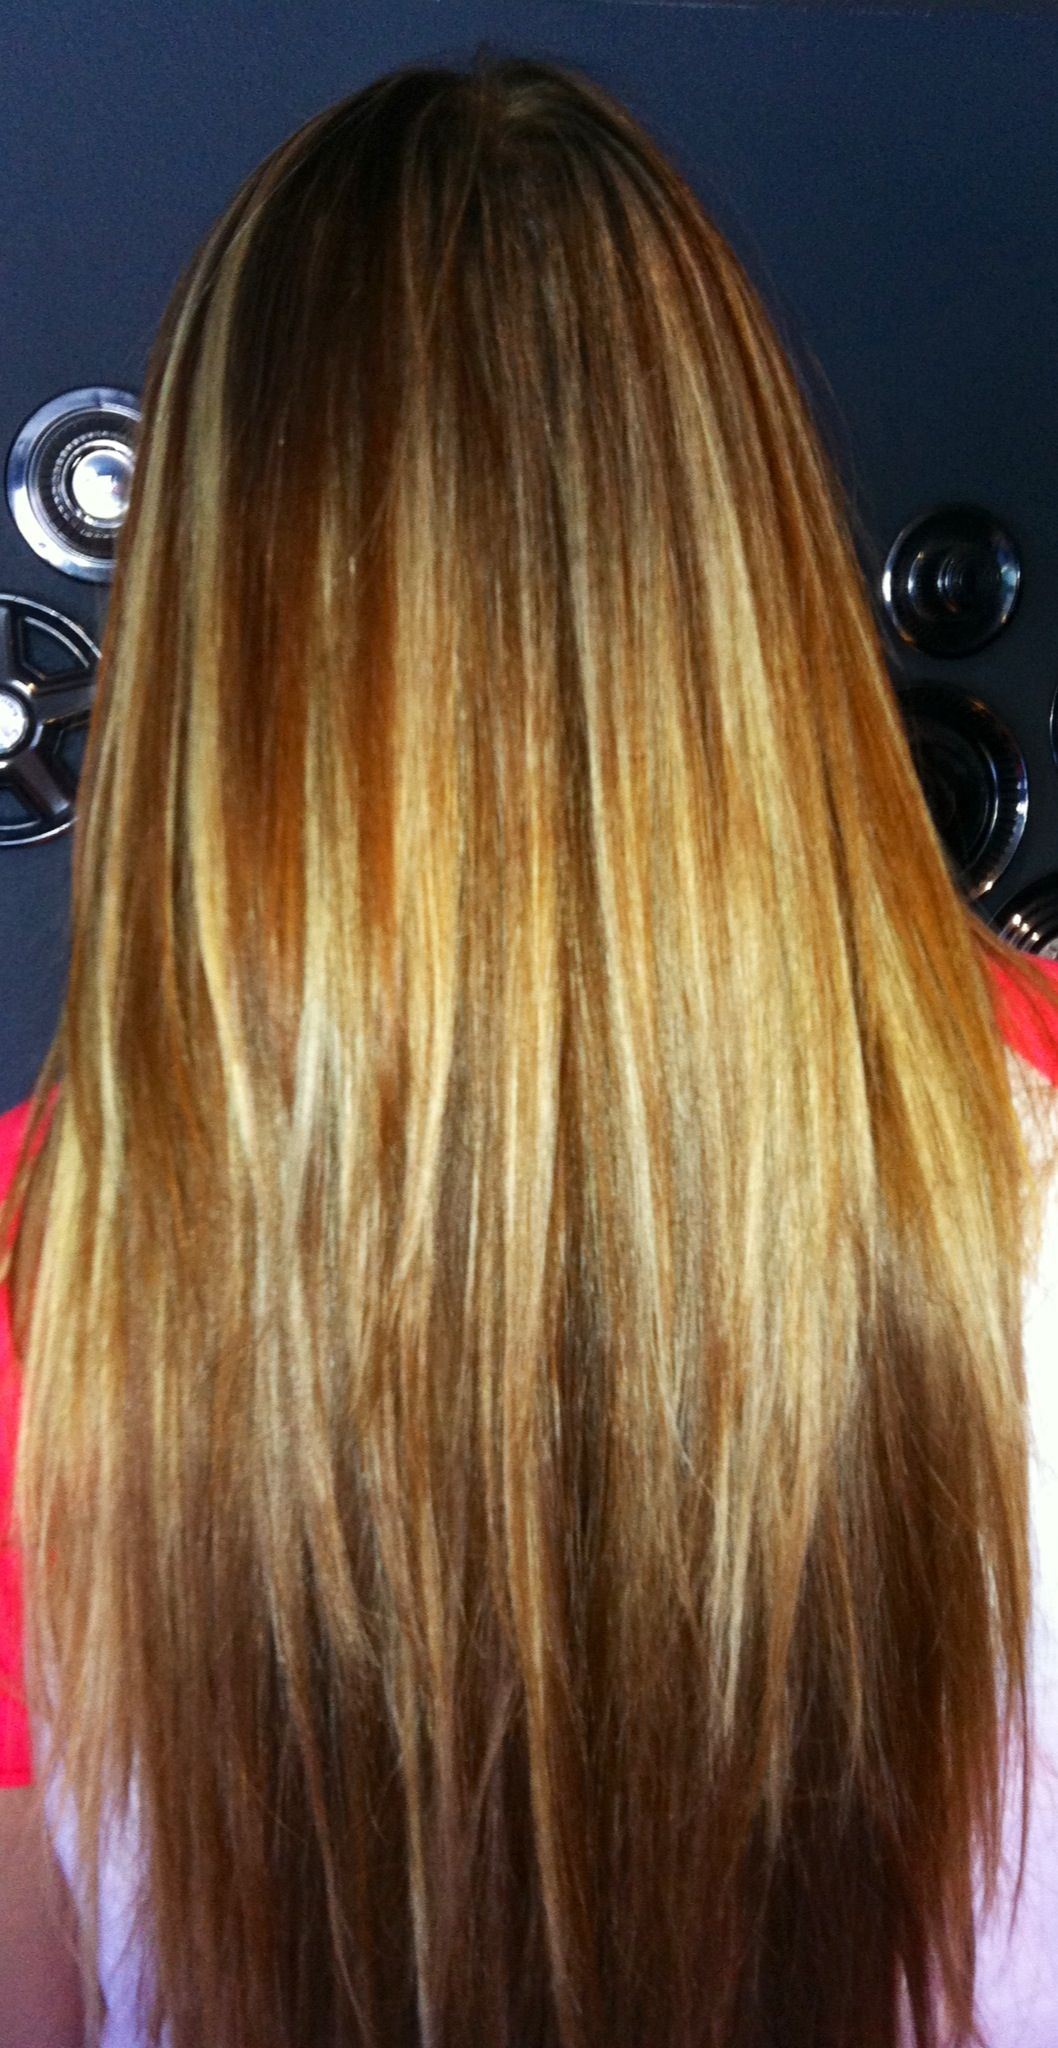 Long Red Layered Hair With Blonde Highlights Hair Makeup